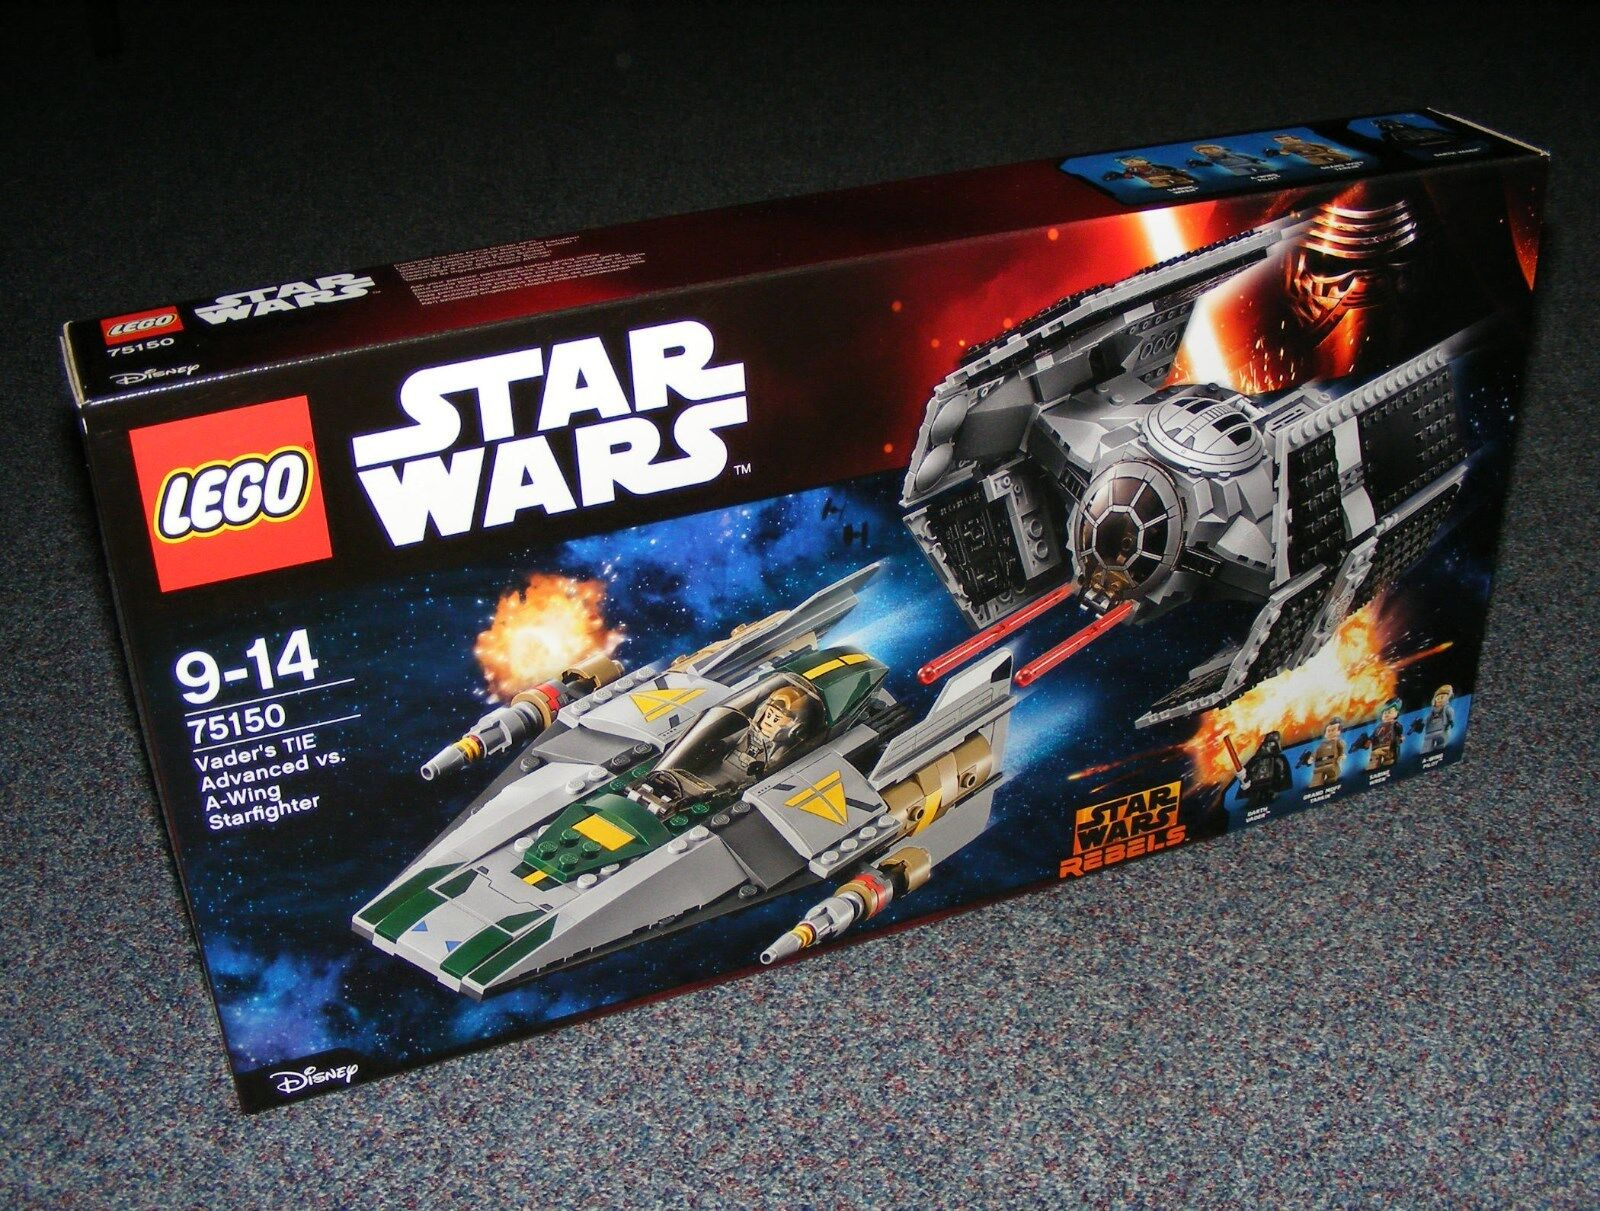 STAR WARS LEGO 75150 VADER'S TIE ADVANCED Vs A-WING STARFIGHTER BRAND NEW SEALED